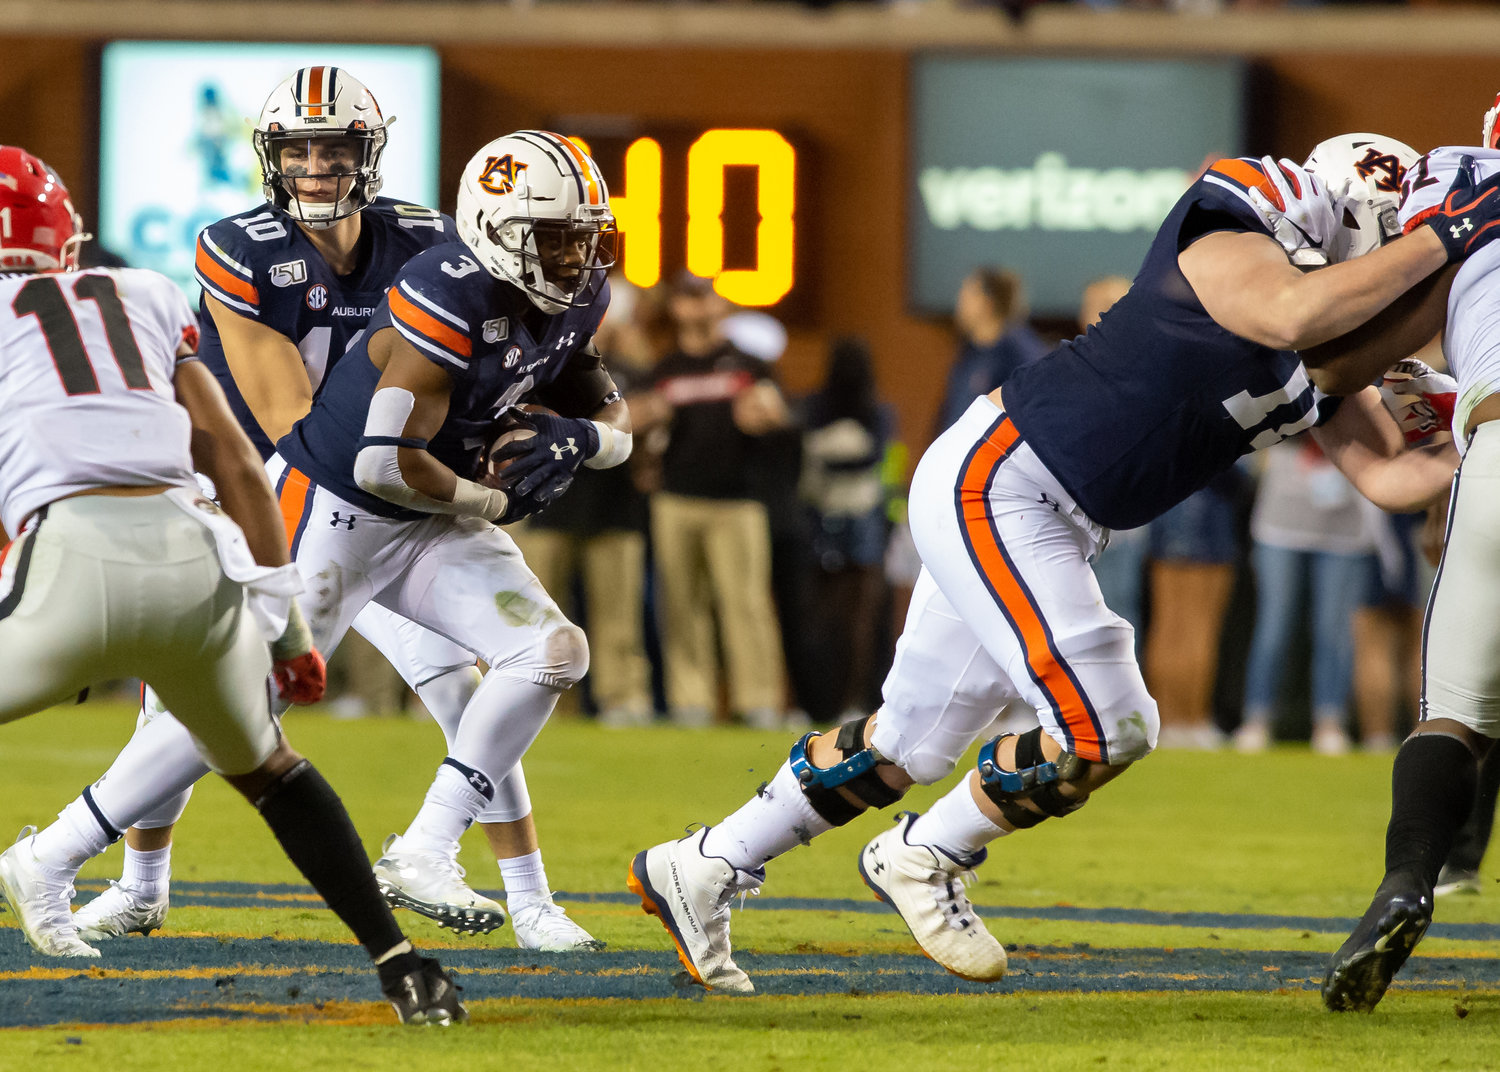 Auburn Tigers running back D.J. Williams (3) runs behind the blocking of Auburn Tigers offensive lineman Jack Driscoll (71) during the second half of Saturday's game, at Jordan-Hare Stadium in Auburn,, AL. Daily Mountain Eagle -  Jeff Johnsey